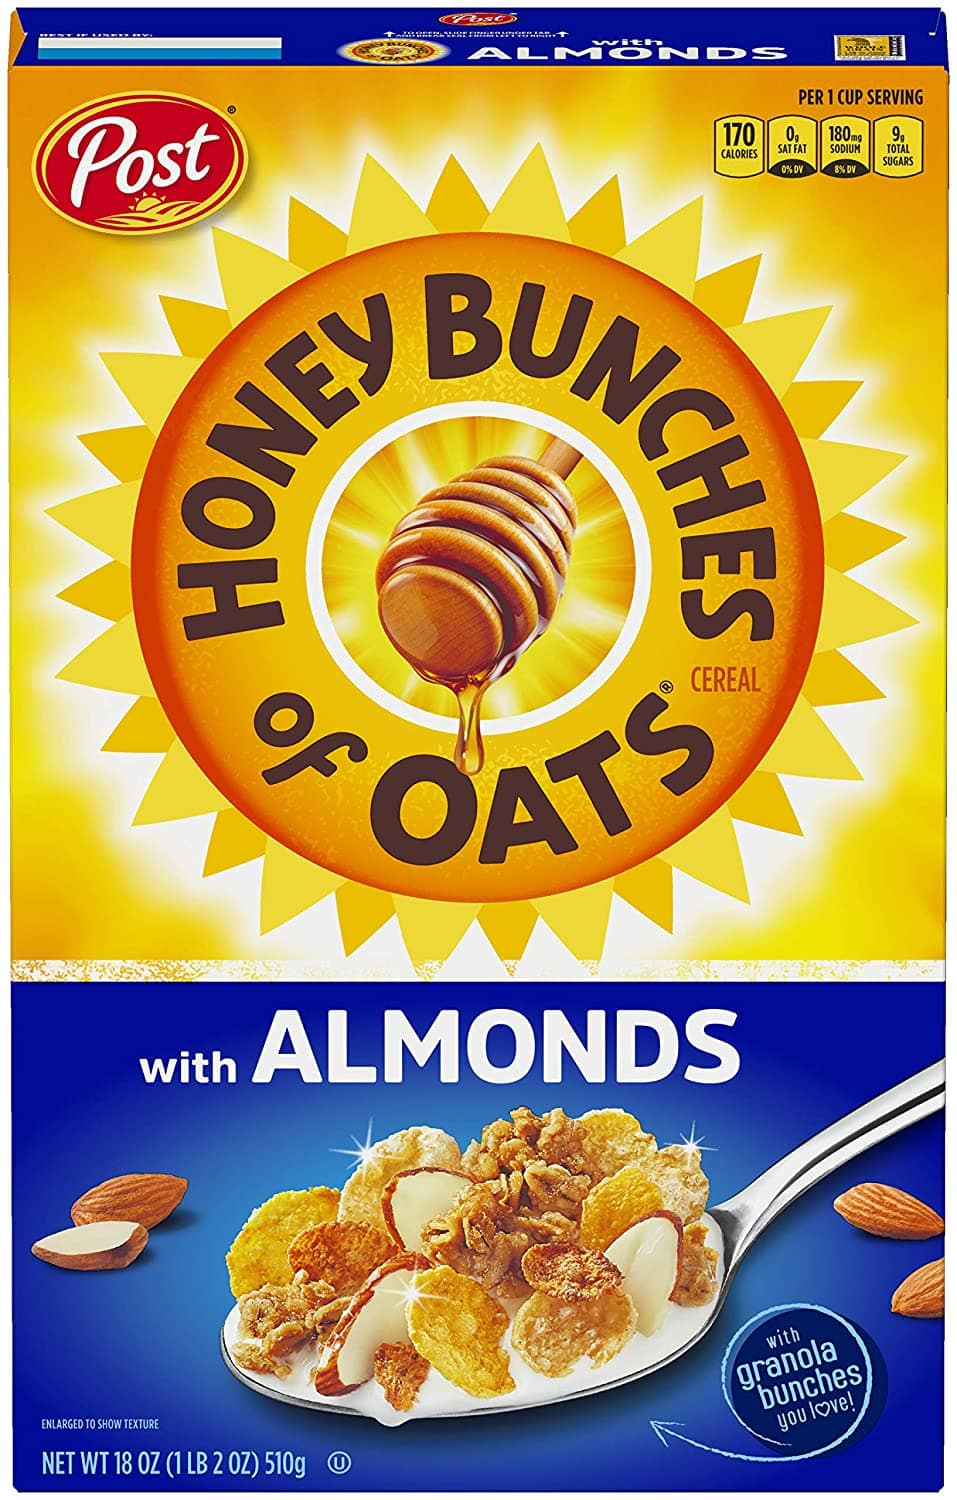 18-Oz Post Honey Bunches of Oats w/ Crunchy Honey Roasted Cereal $2.36 w/ S&S + Free S&H w/ Prime or $25+ (Select accounts: 2 for $4.72 + $2 Digital Credit w/ No-Rush Shipping)